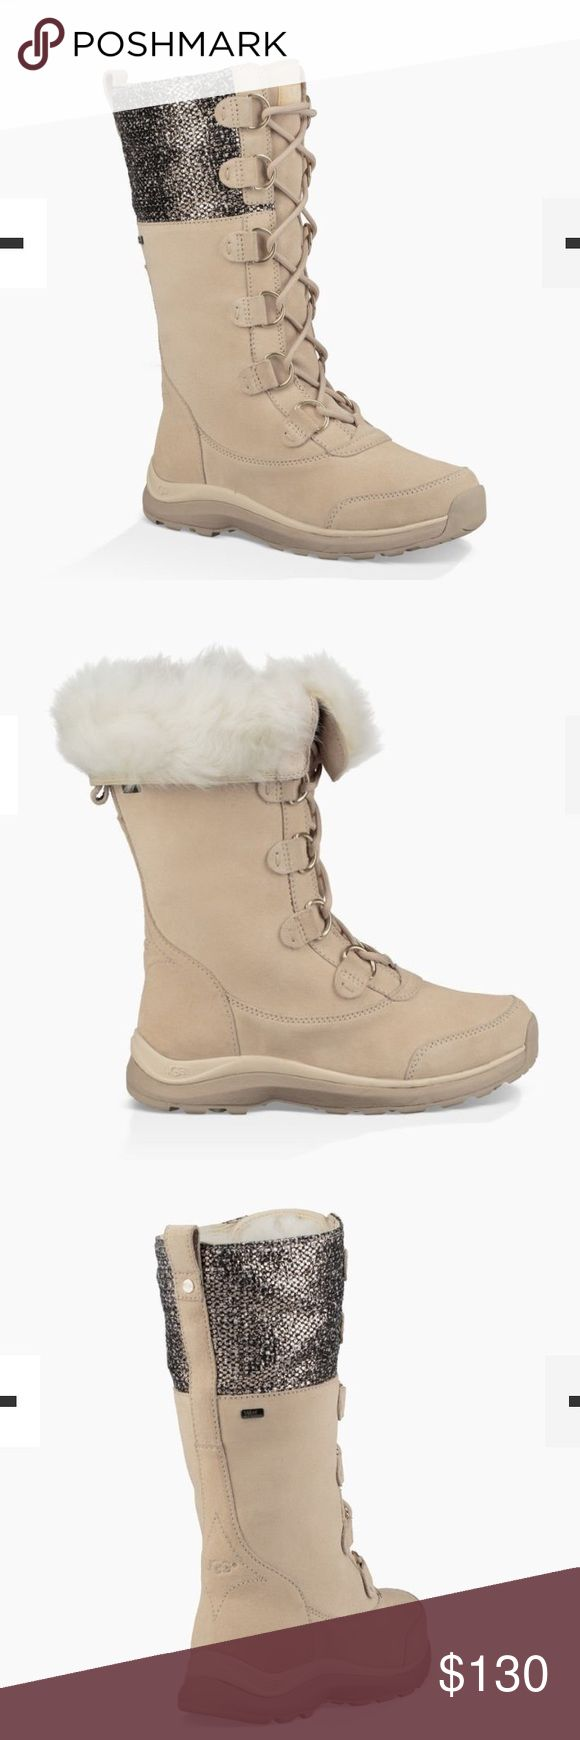 NEW UGG ATLASON FRILL. Color:CREAM This all-weather boot is outfitted with everything you need on the mountain – waterproof suede, cold-weather rating to -32˚C, wool lining, and a specialized outsole to keep you steady on wet ice. With silver hardware up the laces and metallic tweed on the calf, the Atlason Frill brings a festive feel to your outdoor adventures, while a cuffable shaft folds down to expose some signature UGG fluff. UGG Shoes Winter & Rain Boots